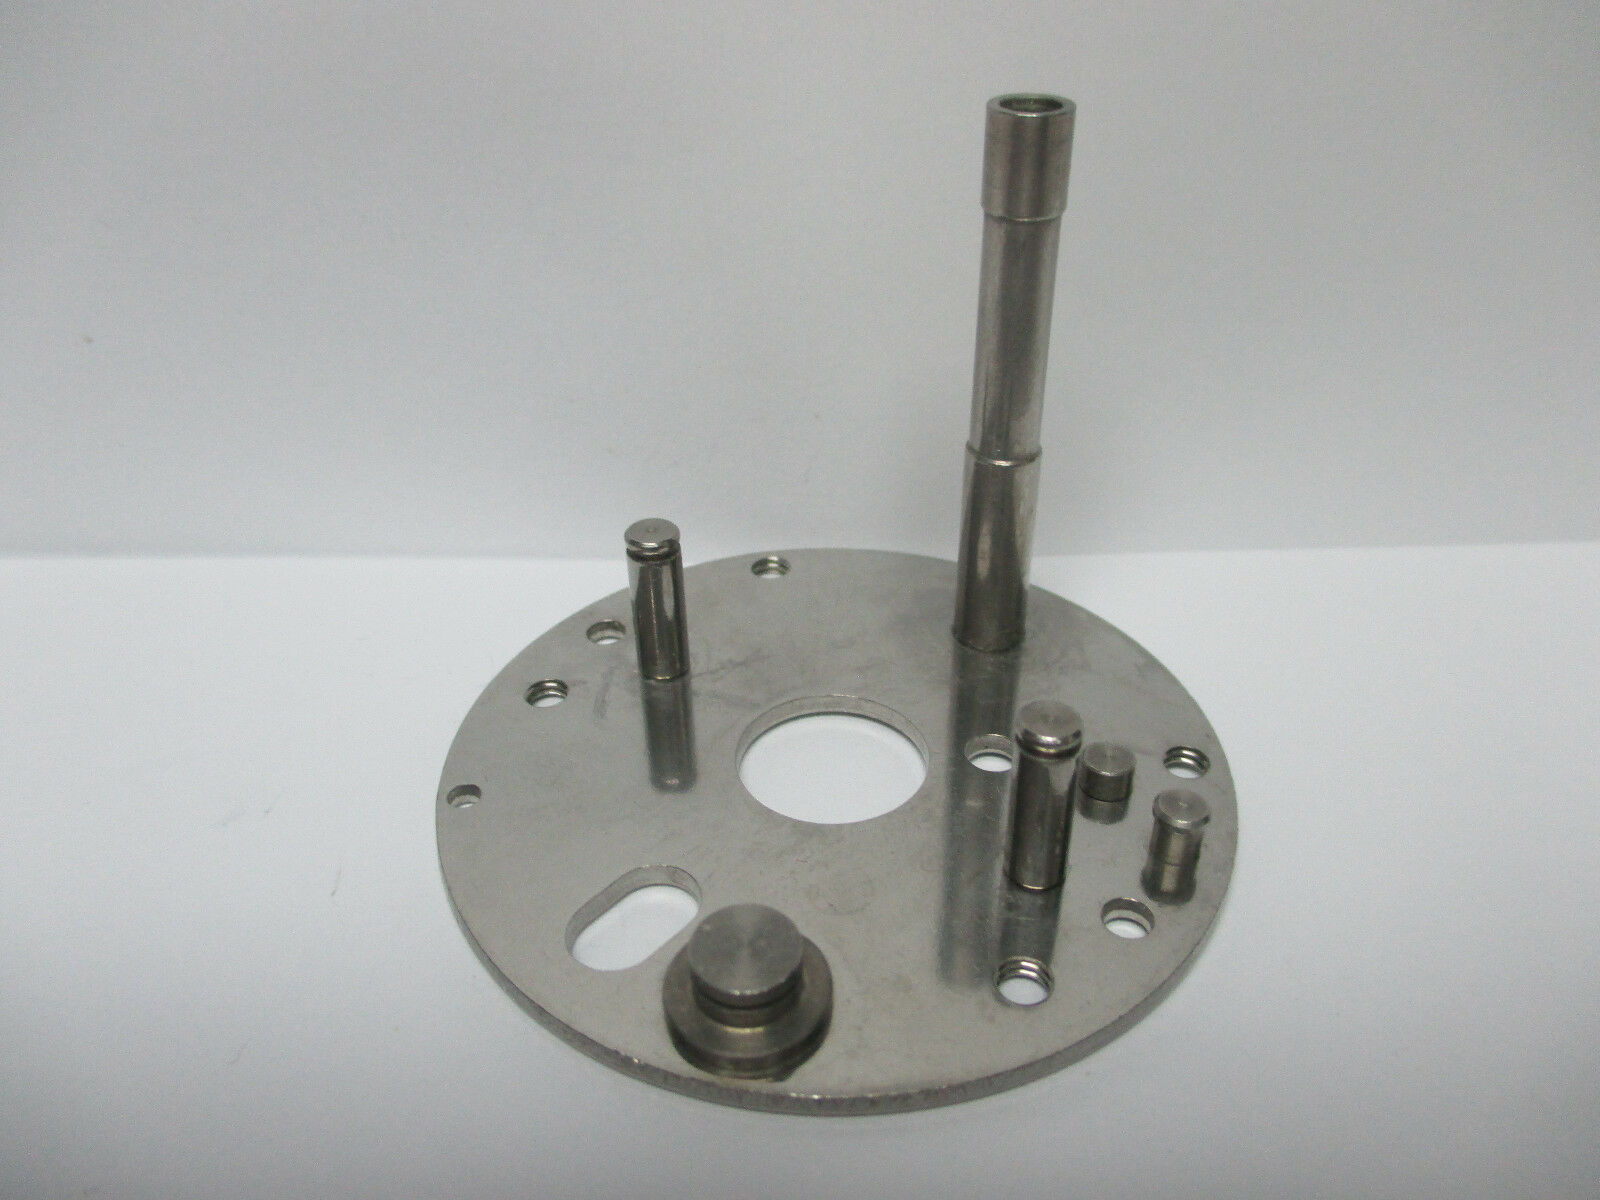 NEW NEWELL CONVENTIONAL REEL PART - C 332 5 - Bridge Only